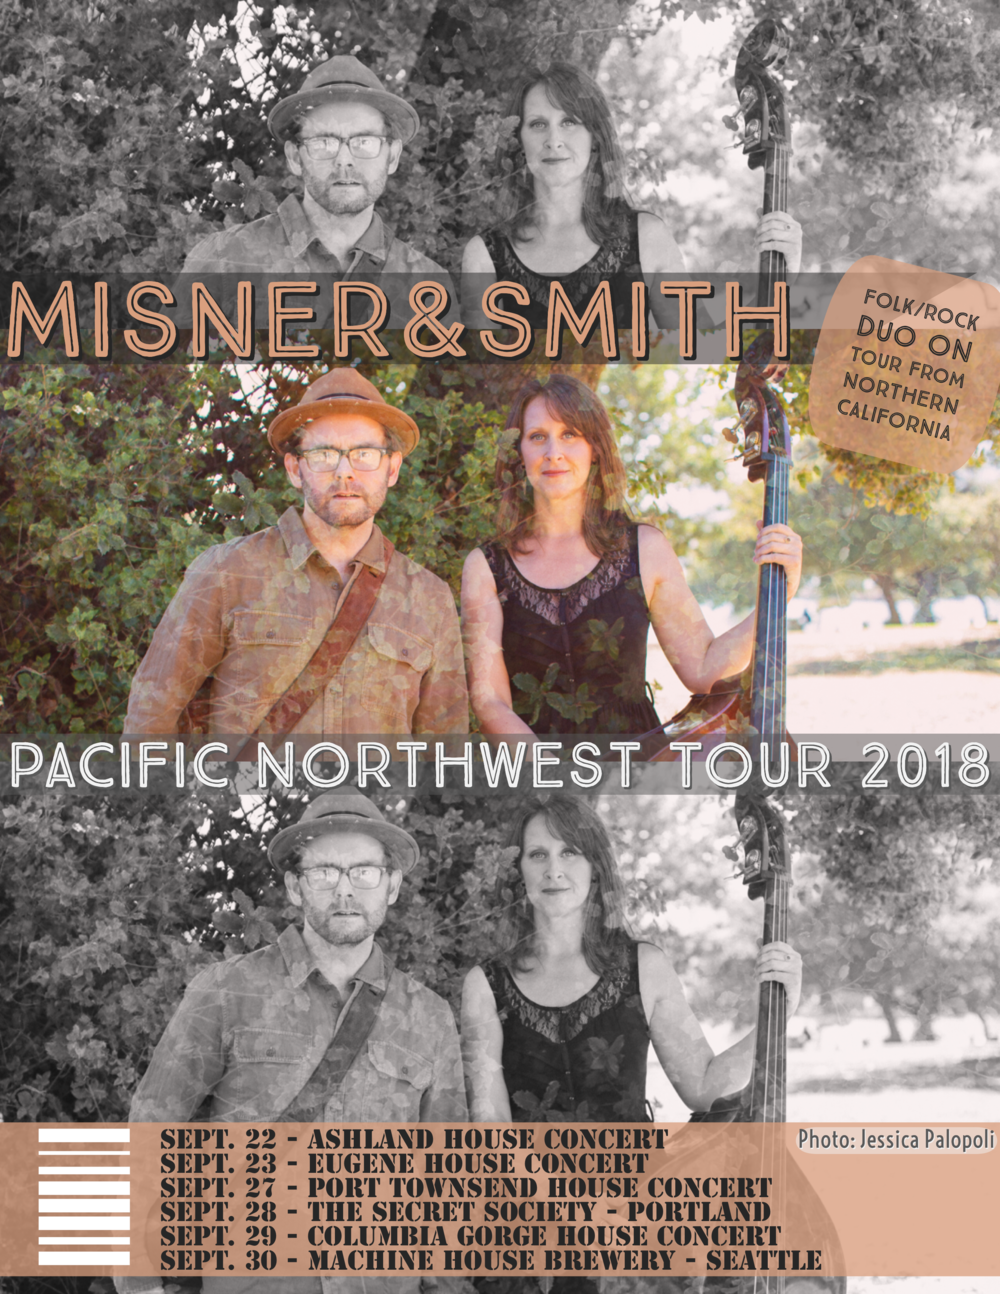 Misner & Smith Pacific Northwest Tour Poster 2018.PNG